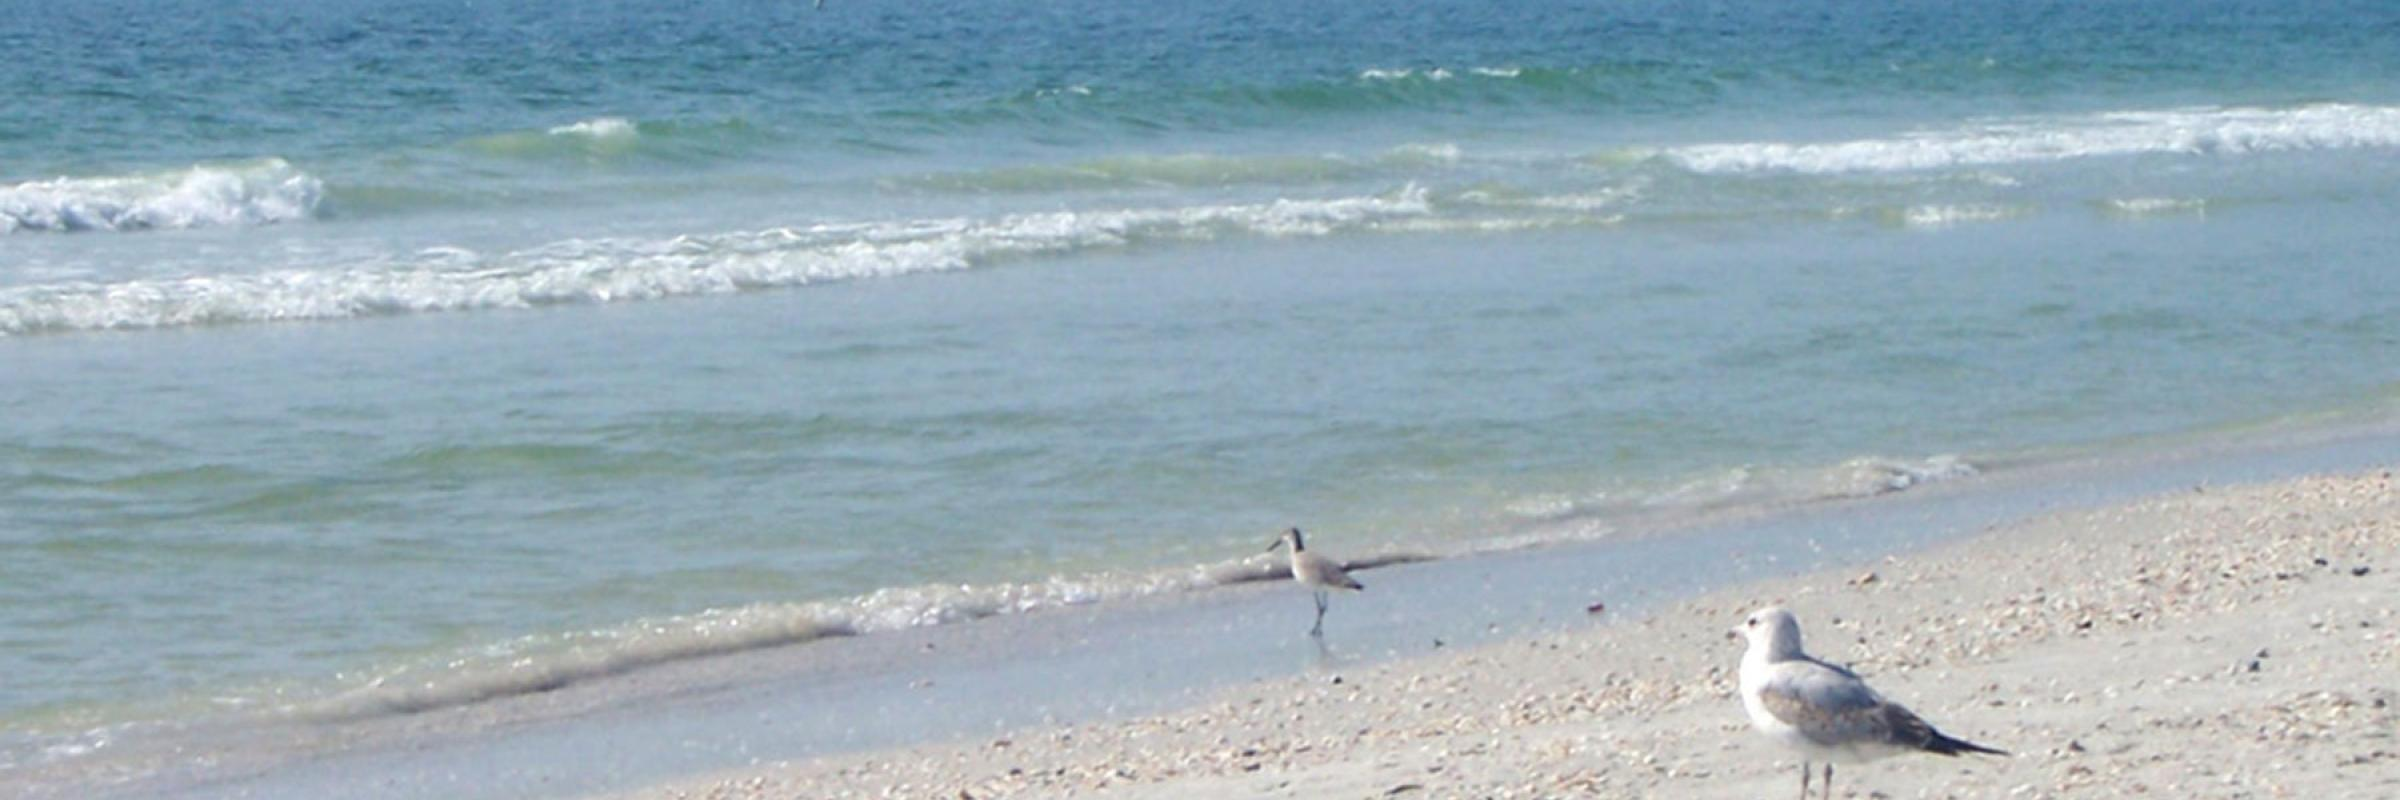 Central West Florida Region Beaches